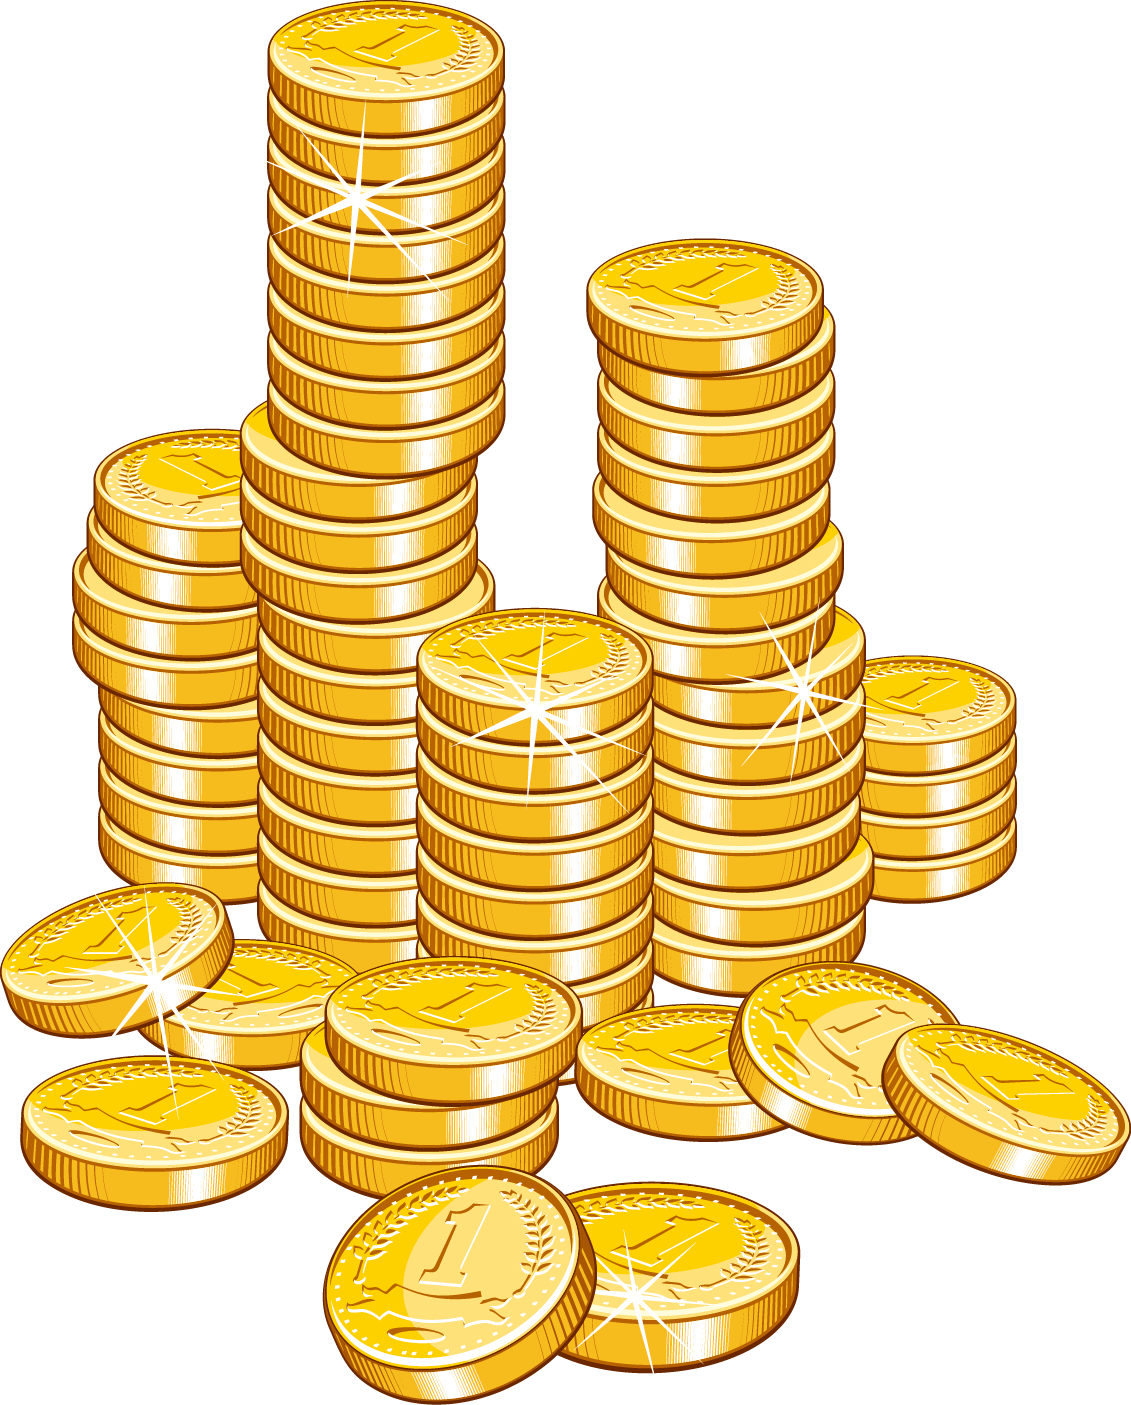 Pile Of Gold Coins Png, png collections at sccpre.cat.